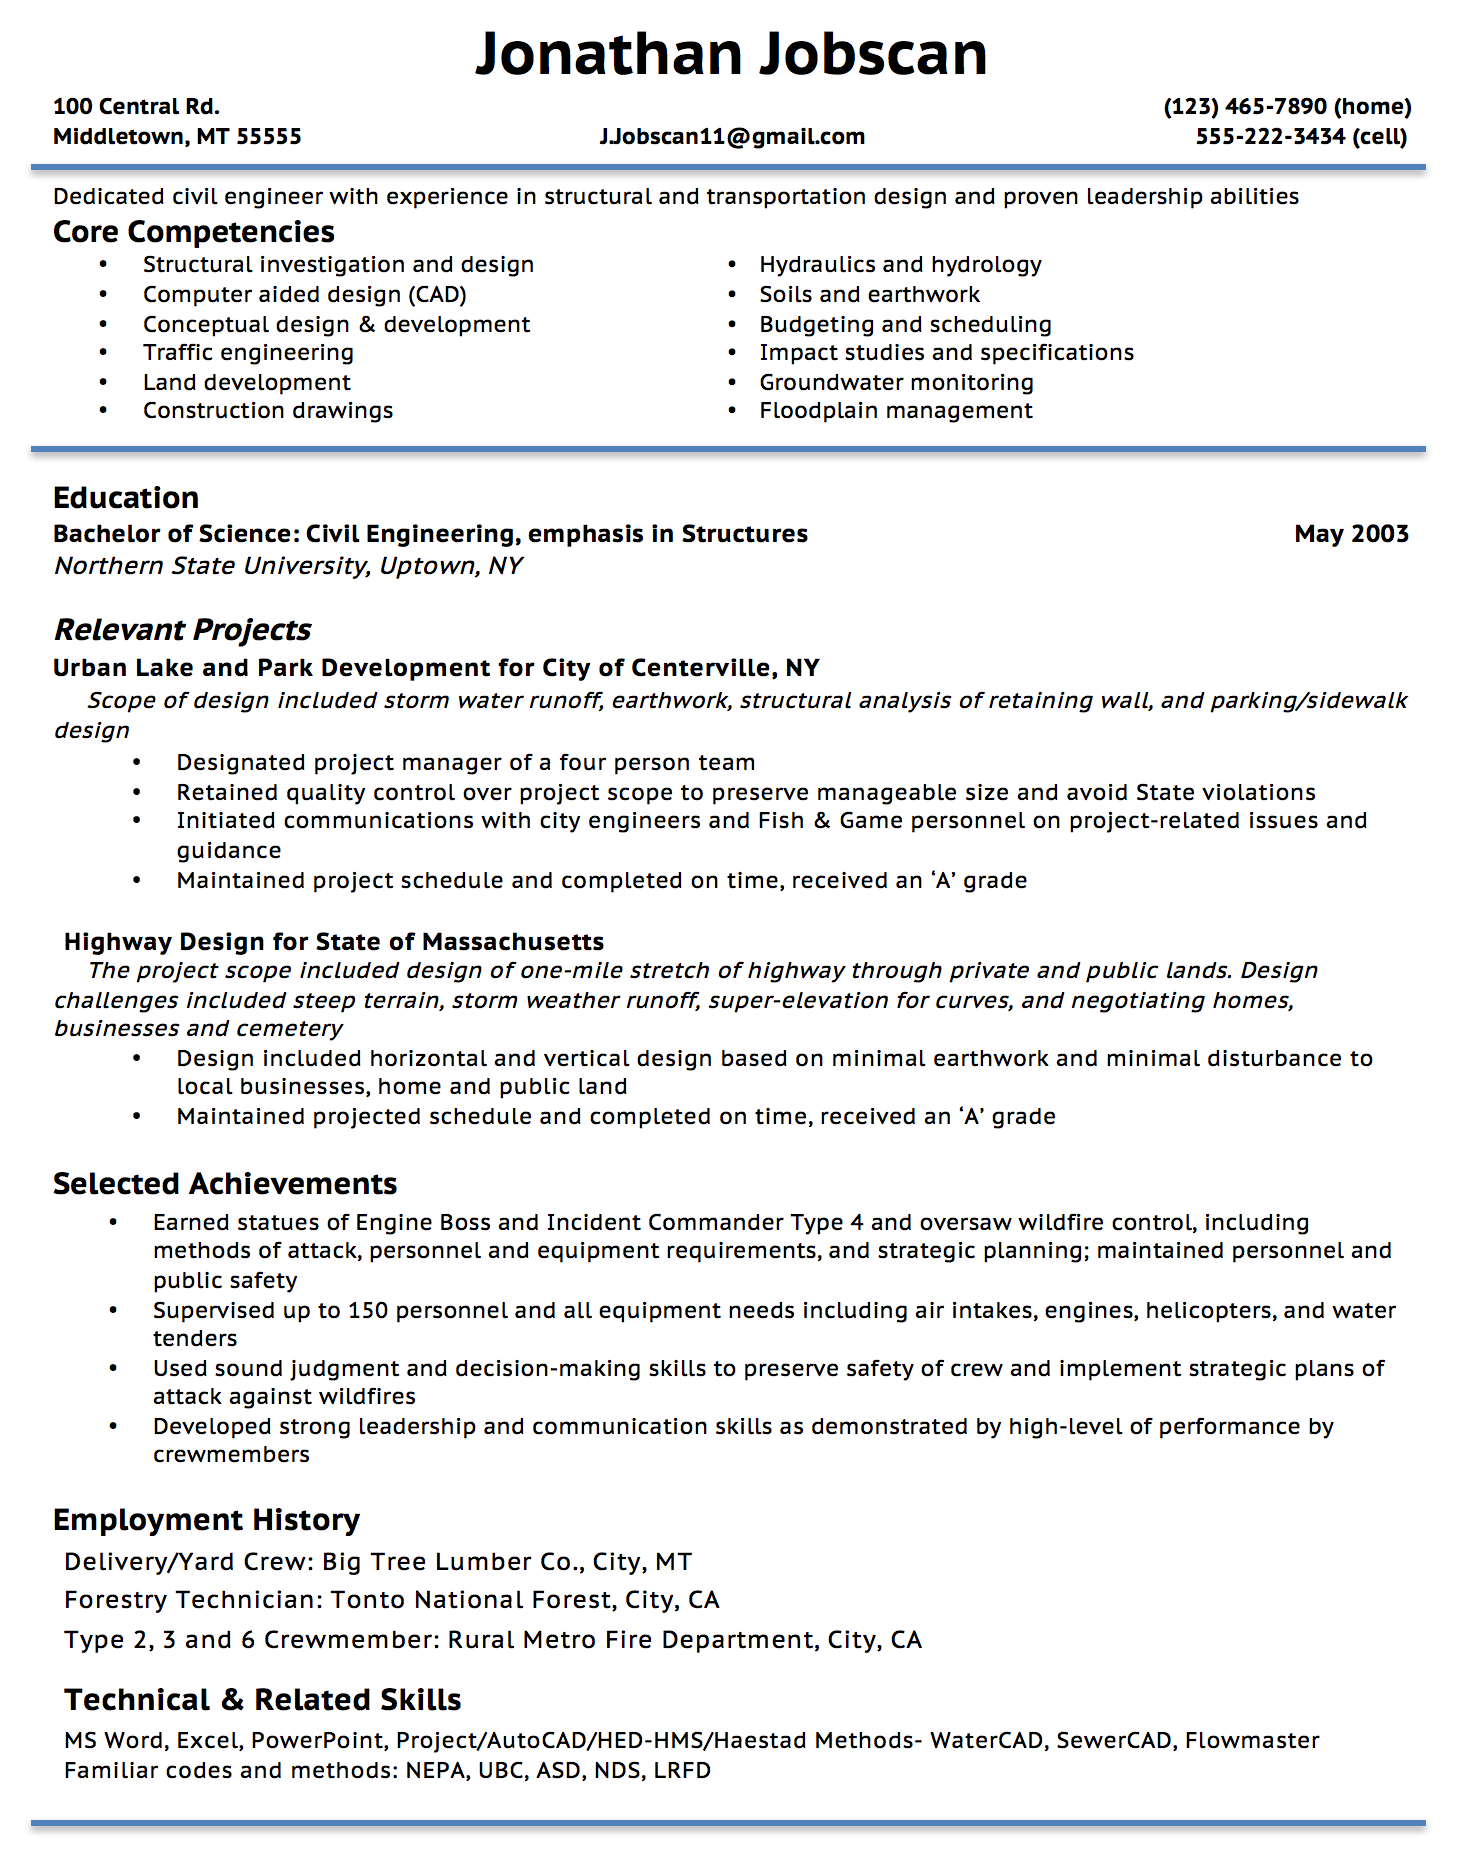 Opposenewapstandardsus  Outstanding Resume Writing Guide  Jobscan With Marvelous Example Of A Functional Resume Format With Easy On The Eye Sample Consulting Resume Also How To Make A Really Good Resume In Addition Personal Trainer Resume Template And Good Action Verbs For Resumes As Well As Cashier Duties On Resume Additionally Pastors Resume From Jobscanco With Opposenewapstandardsus  Marvelous Resume Writing Guide  Jobscan With Easy On The Eye Example Of A Functional Resume Format And Outstanding Sample Consulting Resume Also How To Make A Really Good Resume In Addition Personal Trainer Resume Template From Jobscanco